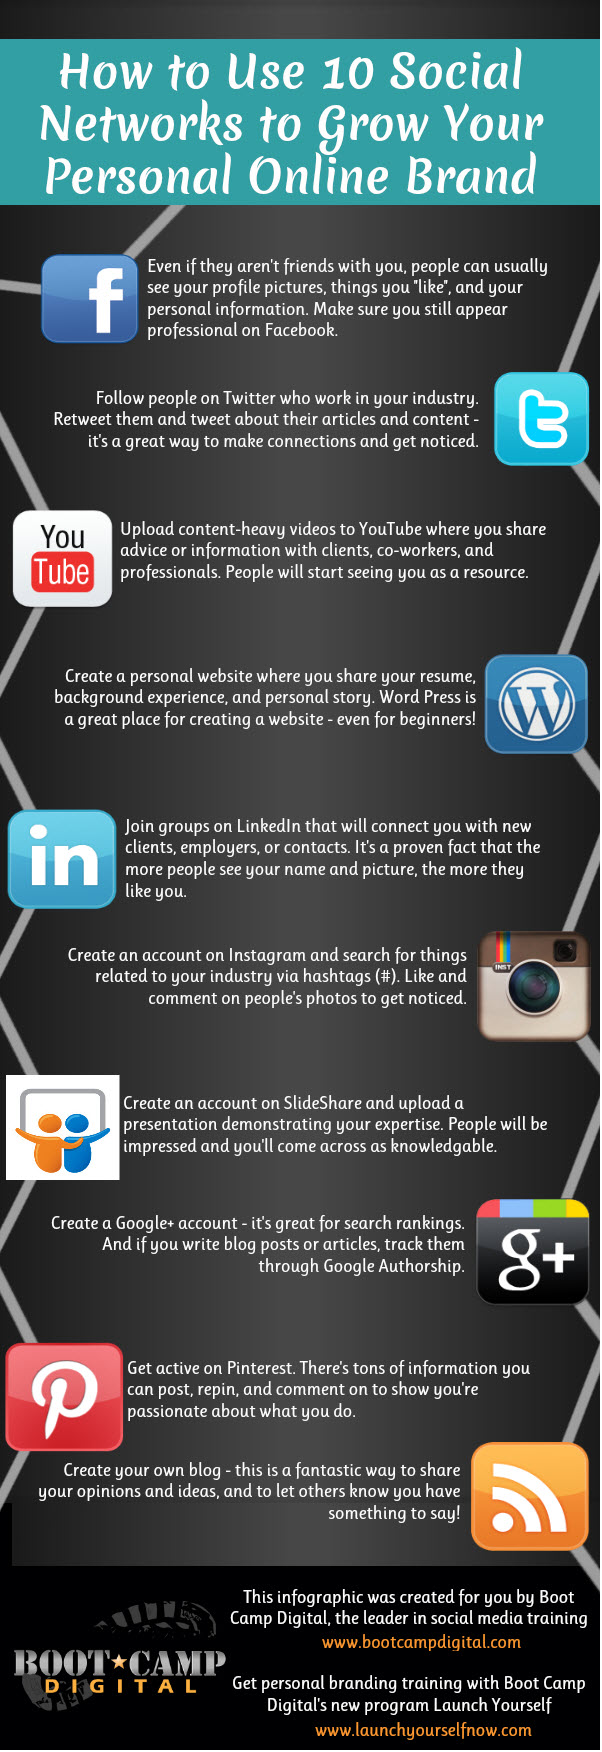 How-to-Use-10-Social-Media-Networks-for-Personal-Online-Branding